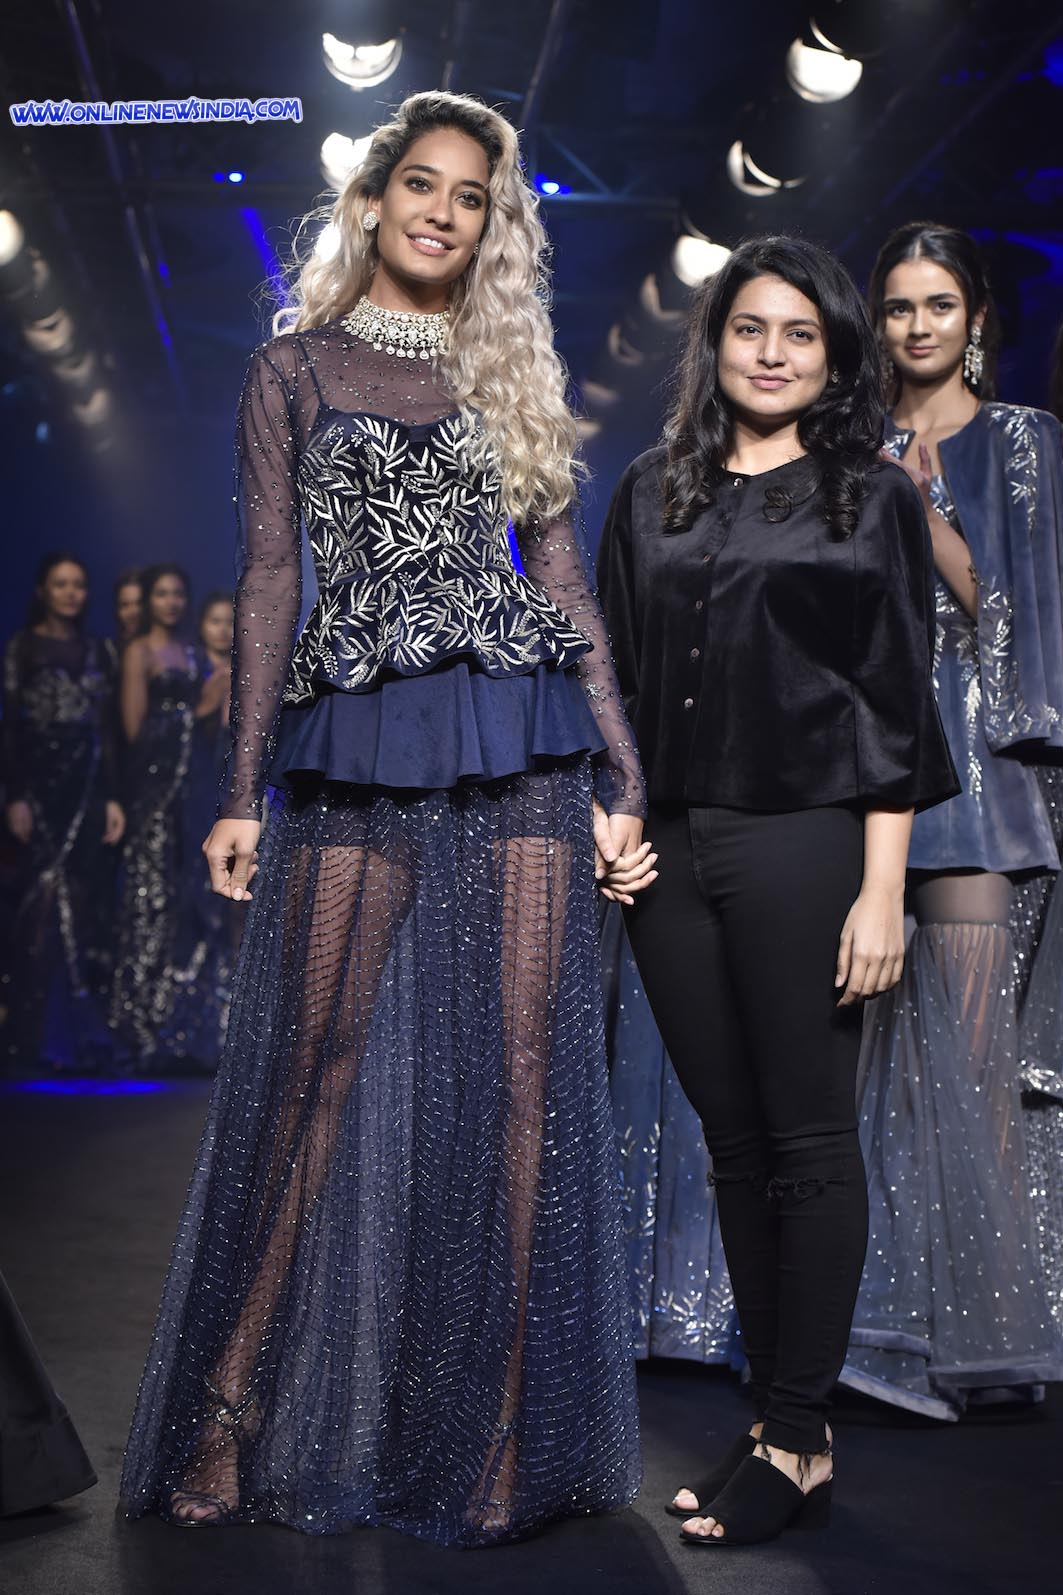 Swapna Anumolu, Mishru with her showstopper Lisa Haydon